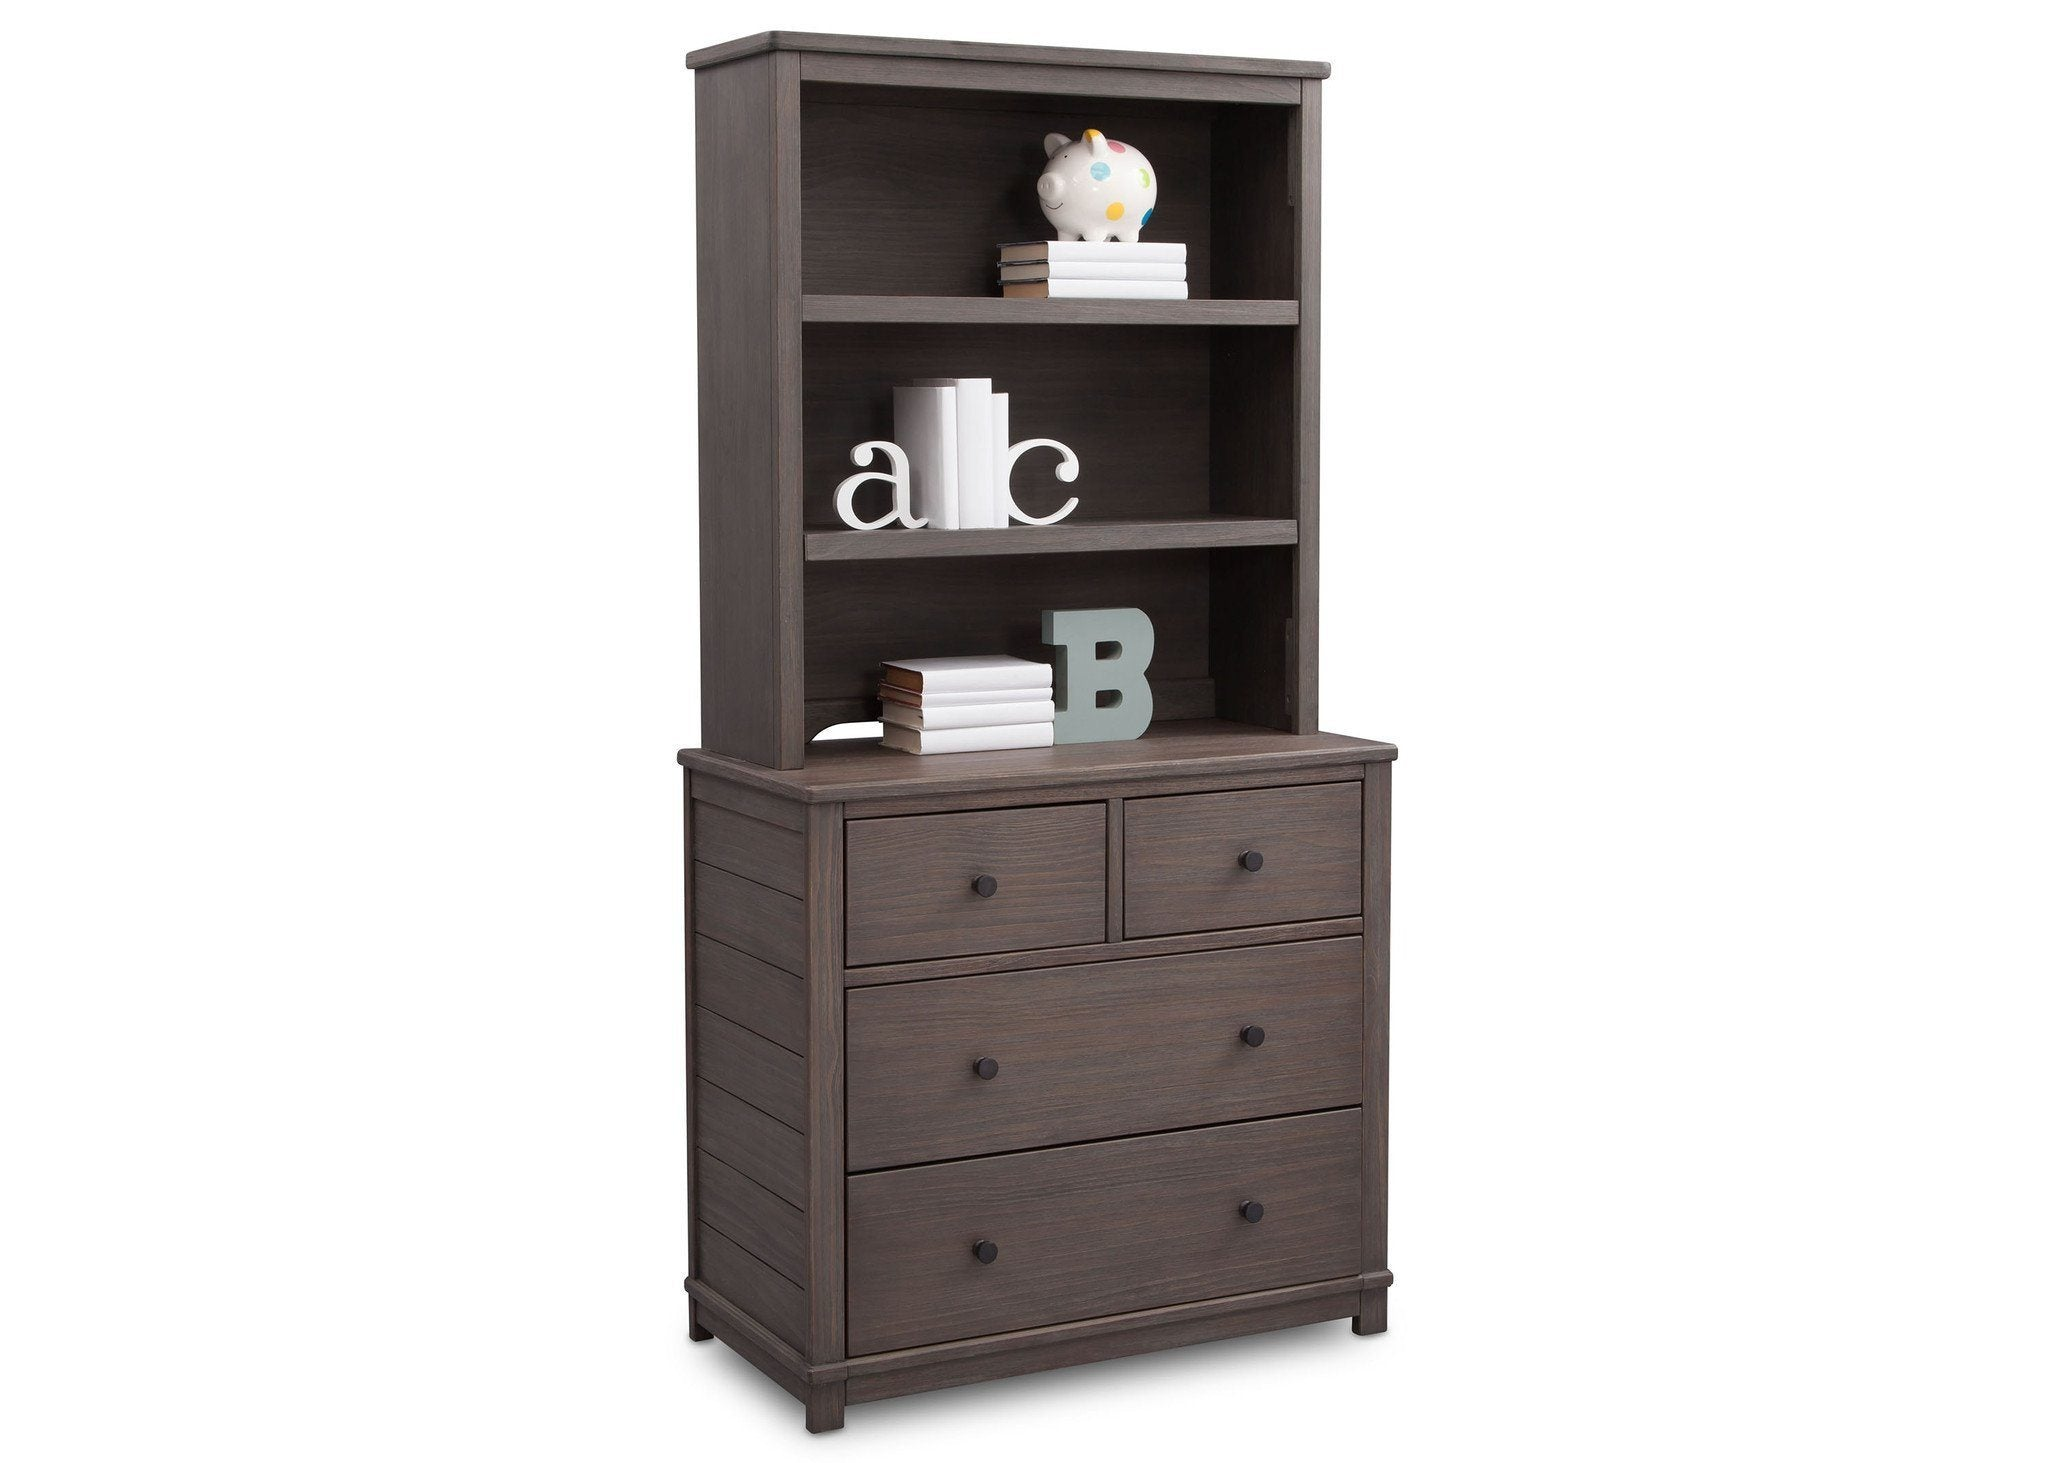 Simmons Kids Rustic Grey (084) Monterey Bookcase/ Hutch atop dresser with props, angled view a4a